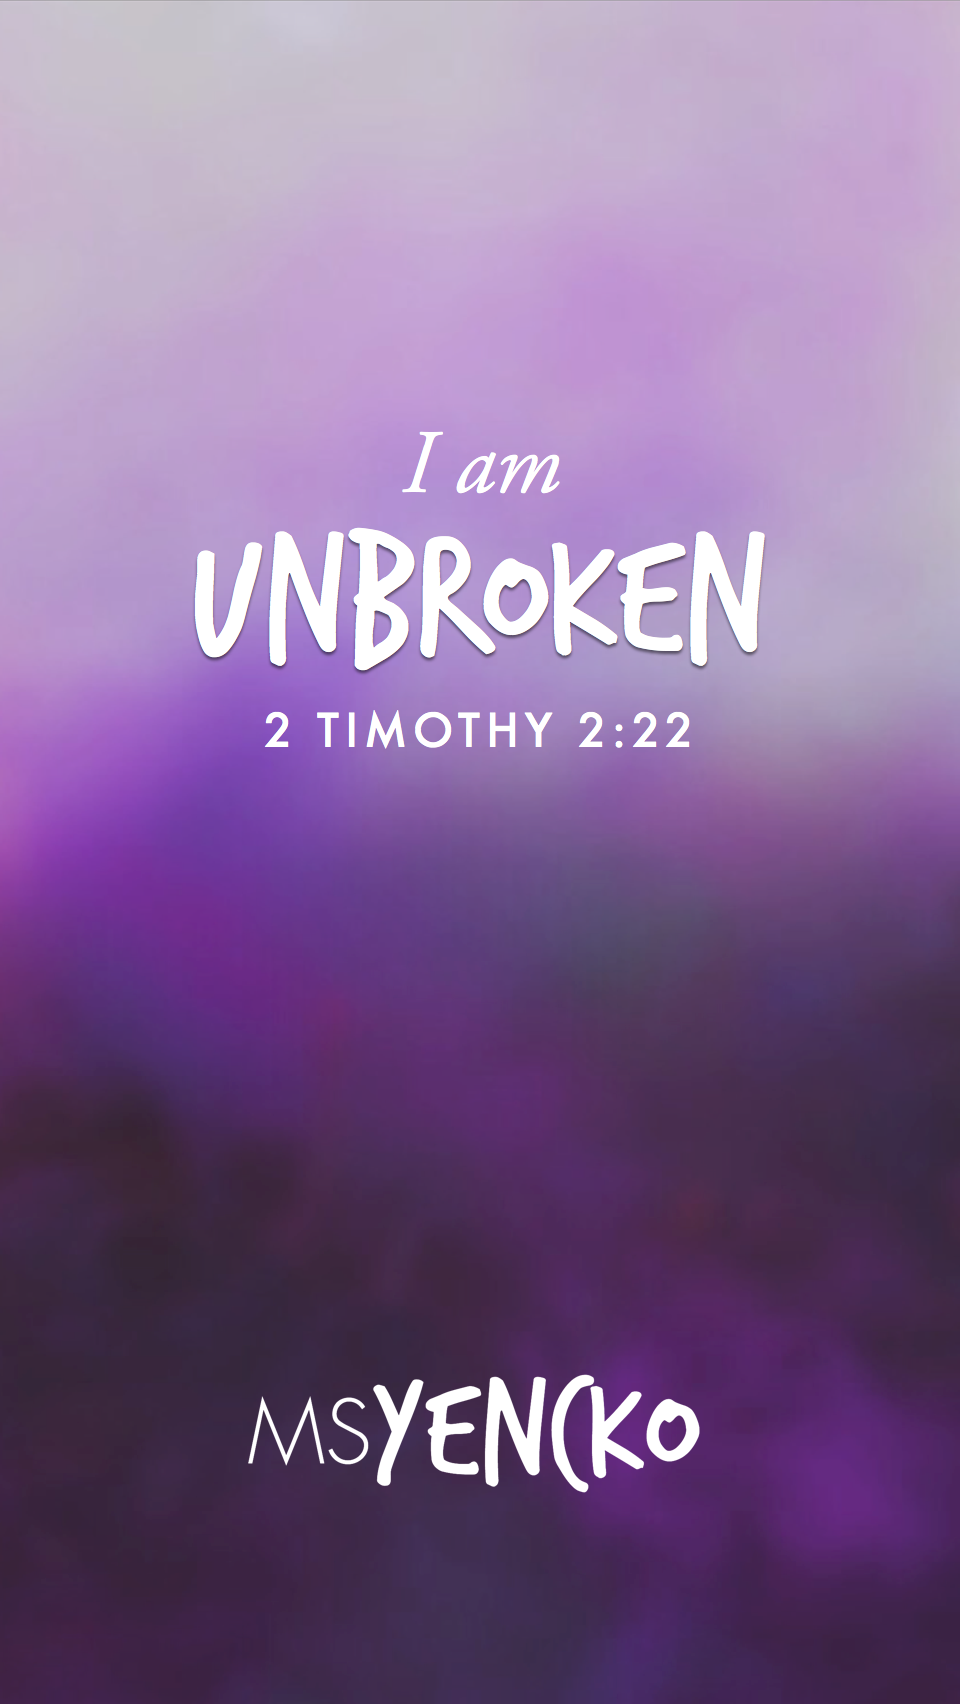 Iphone 5:5c:5s - Unbroken.png